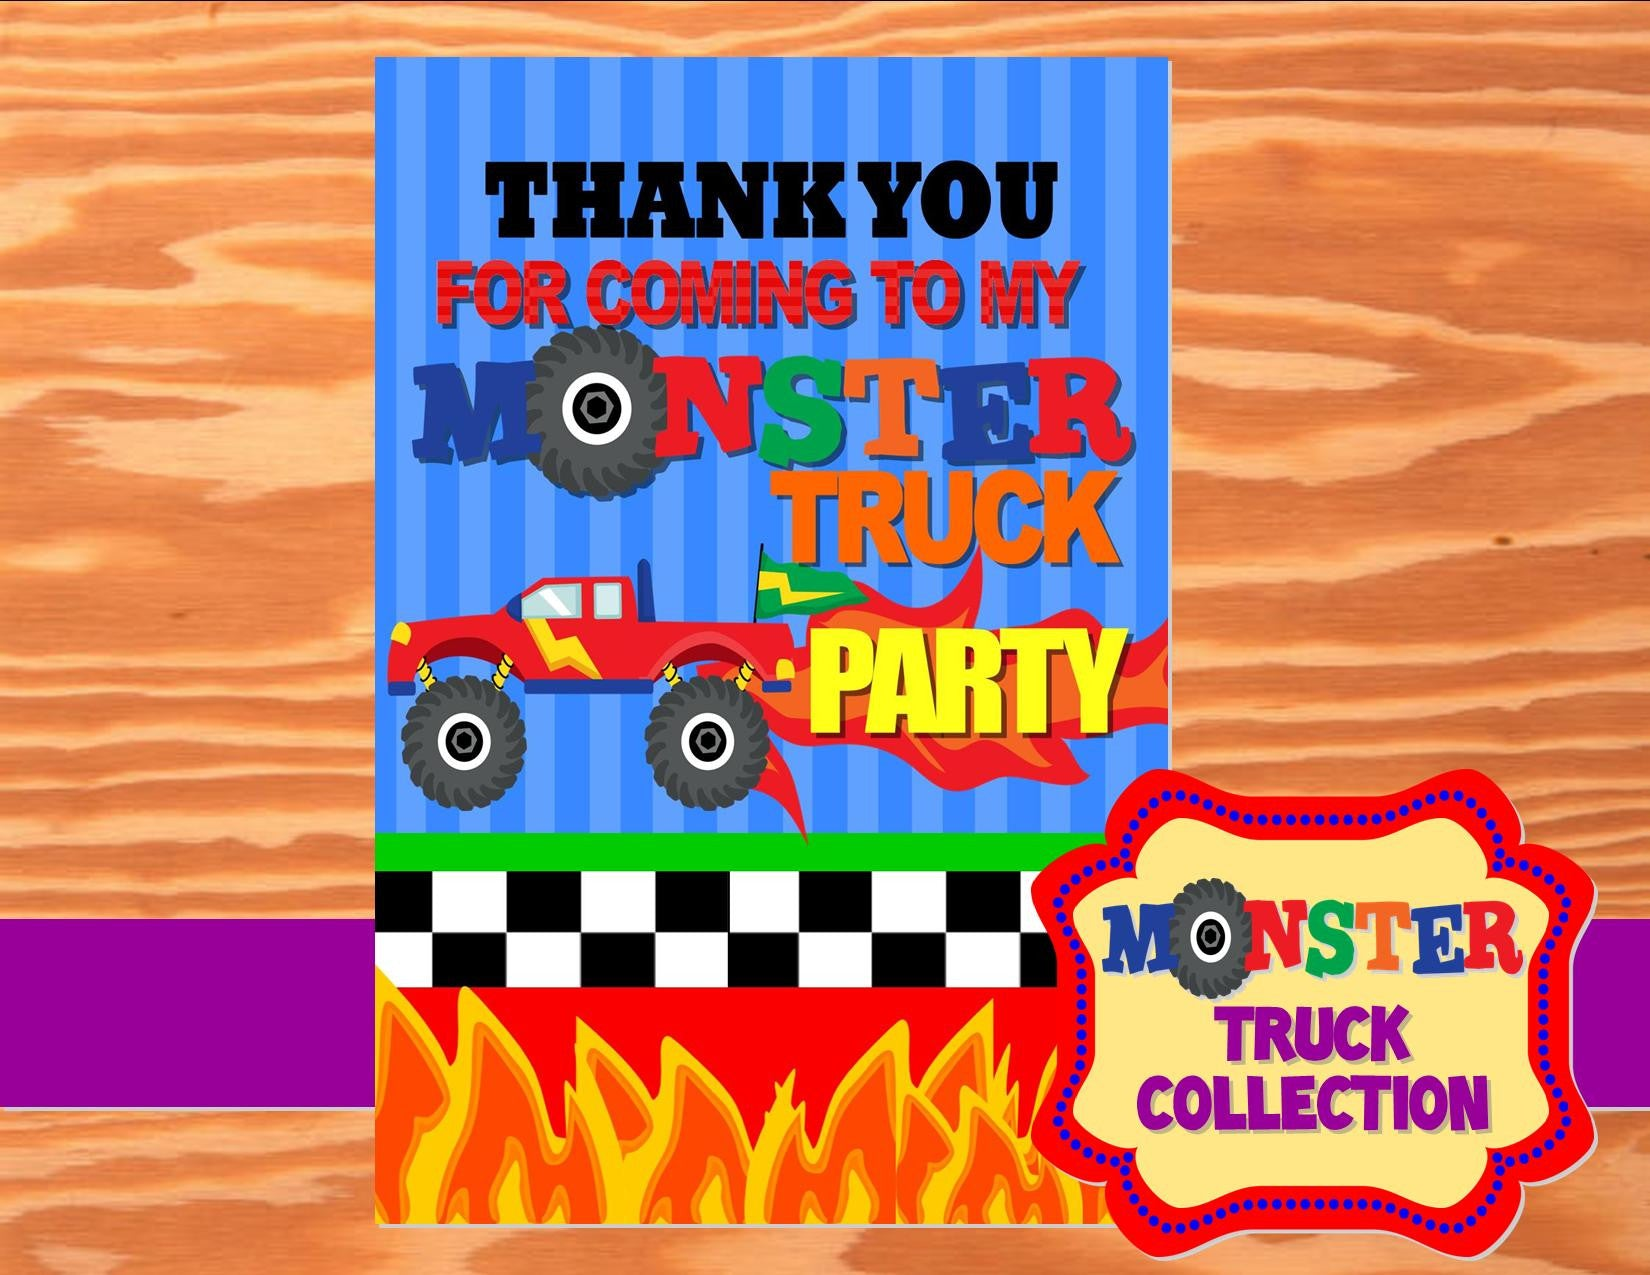 MONSTER Truck - Monster Truck THANK YOU CARDS - Truck Party- Monster Truck Party